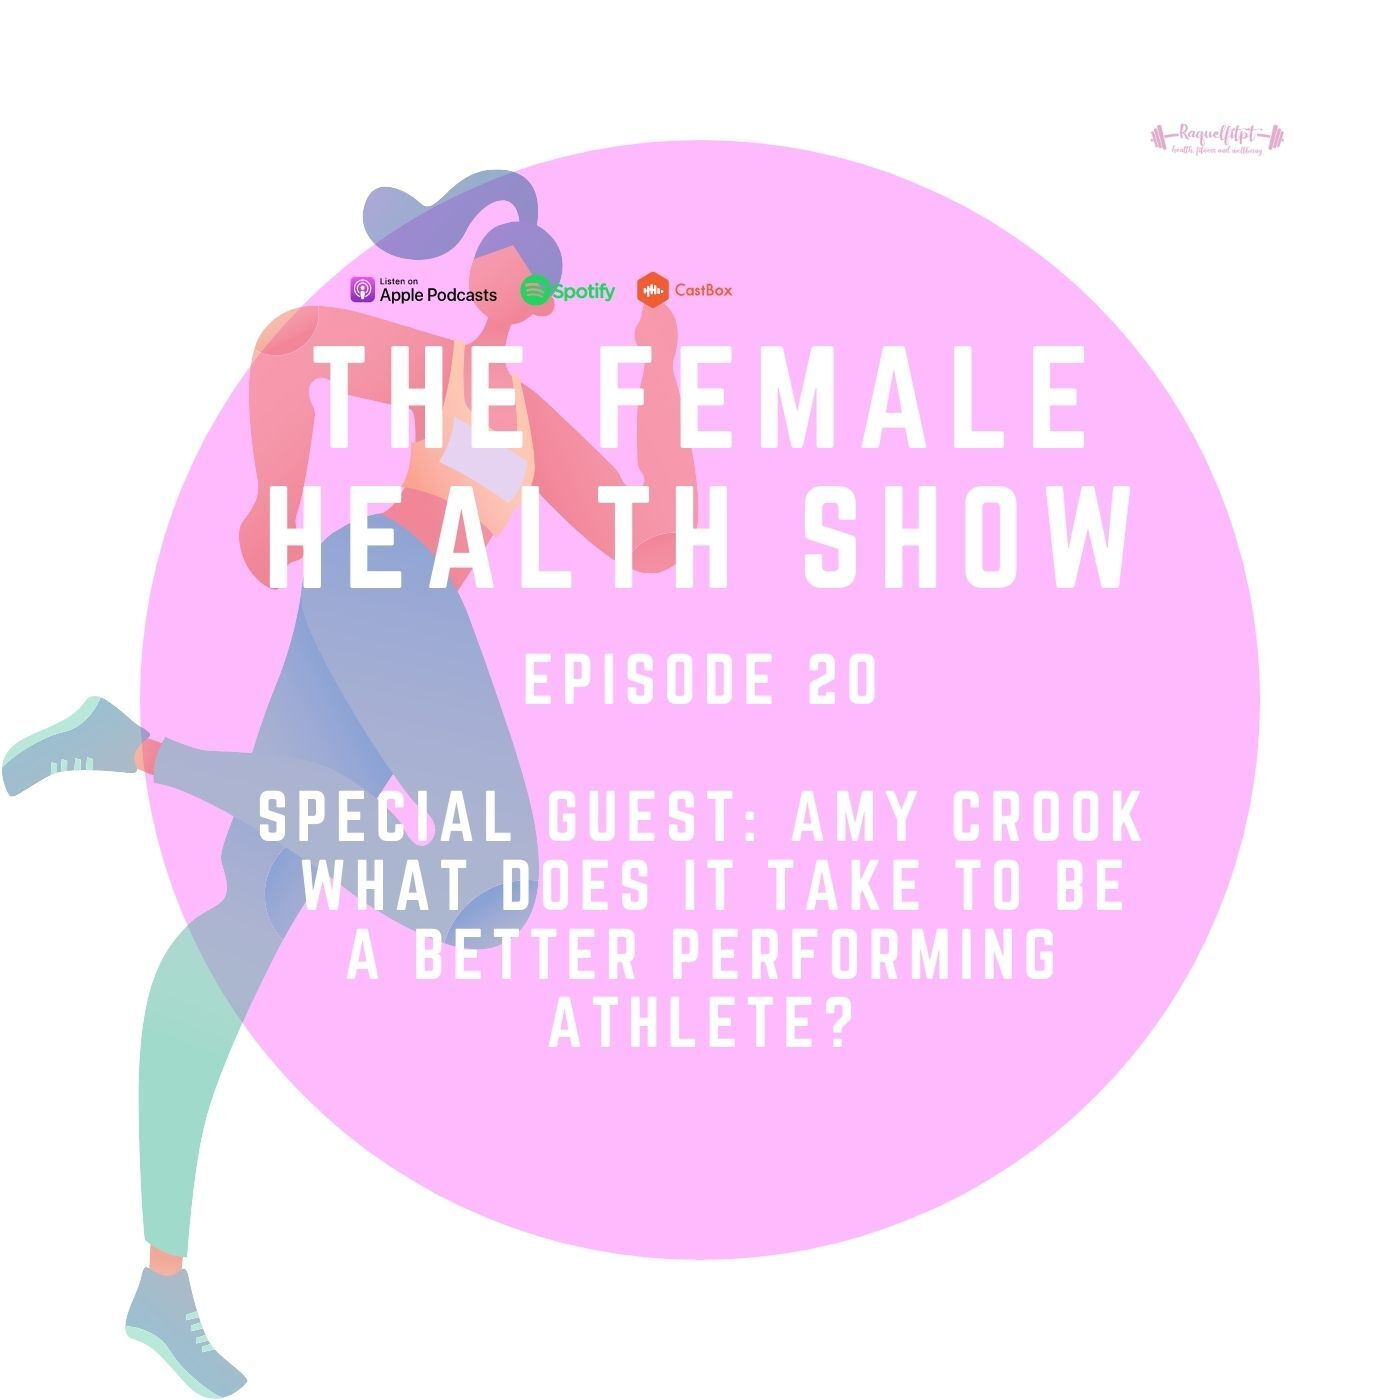 20 - SPECIAL GUEST AMY CROOKE; What does it take to be a better performing athlete?